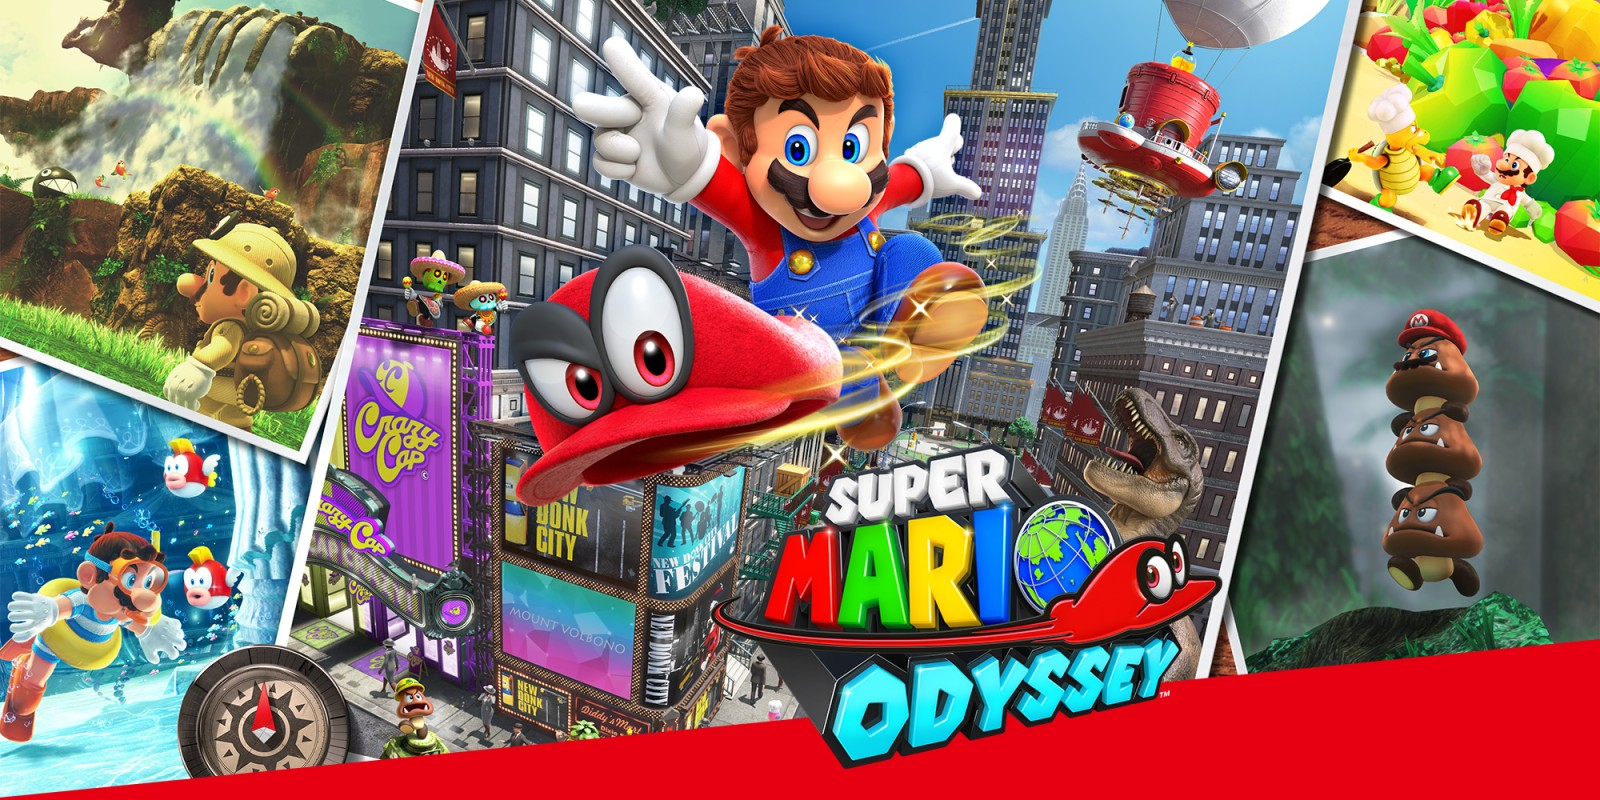 H2x1_NSwitch_SuperMarioOdyssey_image1600